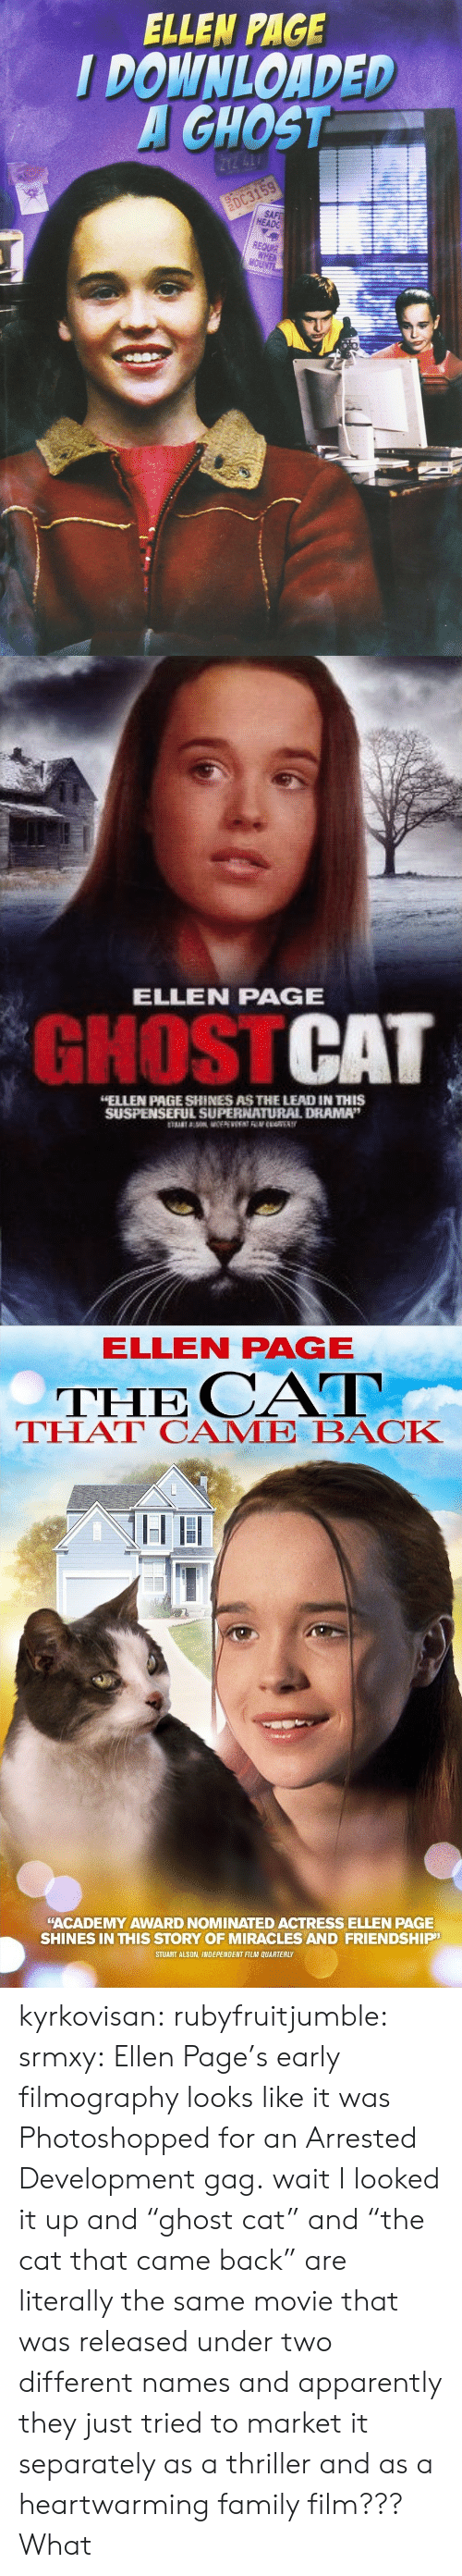 "gag: ELLEN PAGE  I DOWNLOADED  GHOST  HEADG  REQUA  MO   ELLEN PAGE  GHOSTCAT  ELLEN PAGE SHINES AS THE LEAD IN THIS  SUSPENSEFUL SUPERNATUURAL DRAMA""   ELLEN PAGE  THE CAT  THAT CAME BACK  ""ACADEMY AWARD NOMINATED ACTRESS ELLEN PAGE  SHINES IN THIS STORY OF MIRACLES AND FRIENDSHIP  STUART ALSON, INDEPENDENT FILM QUARTERLY kyrkovisan:  rubyfruitjumble:   srmxy:  Ellen Page's early filmography looks like it was Photoshopped for an Arrested Development gag.  wait I looked it up and ""ghost cat"" and ""the cat that came back"" are literally the same movie that was released under two different names and apparently they just tried to market it separately as a thriller and as a heartwarming family film???   What"